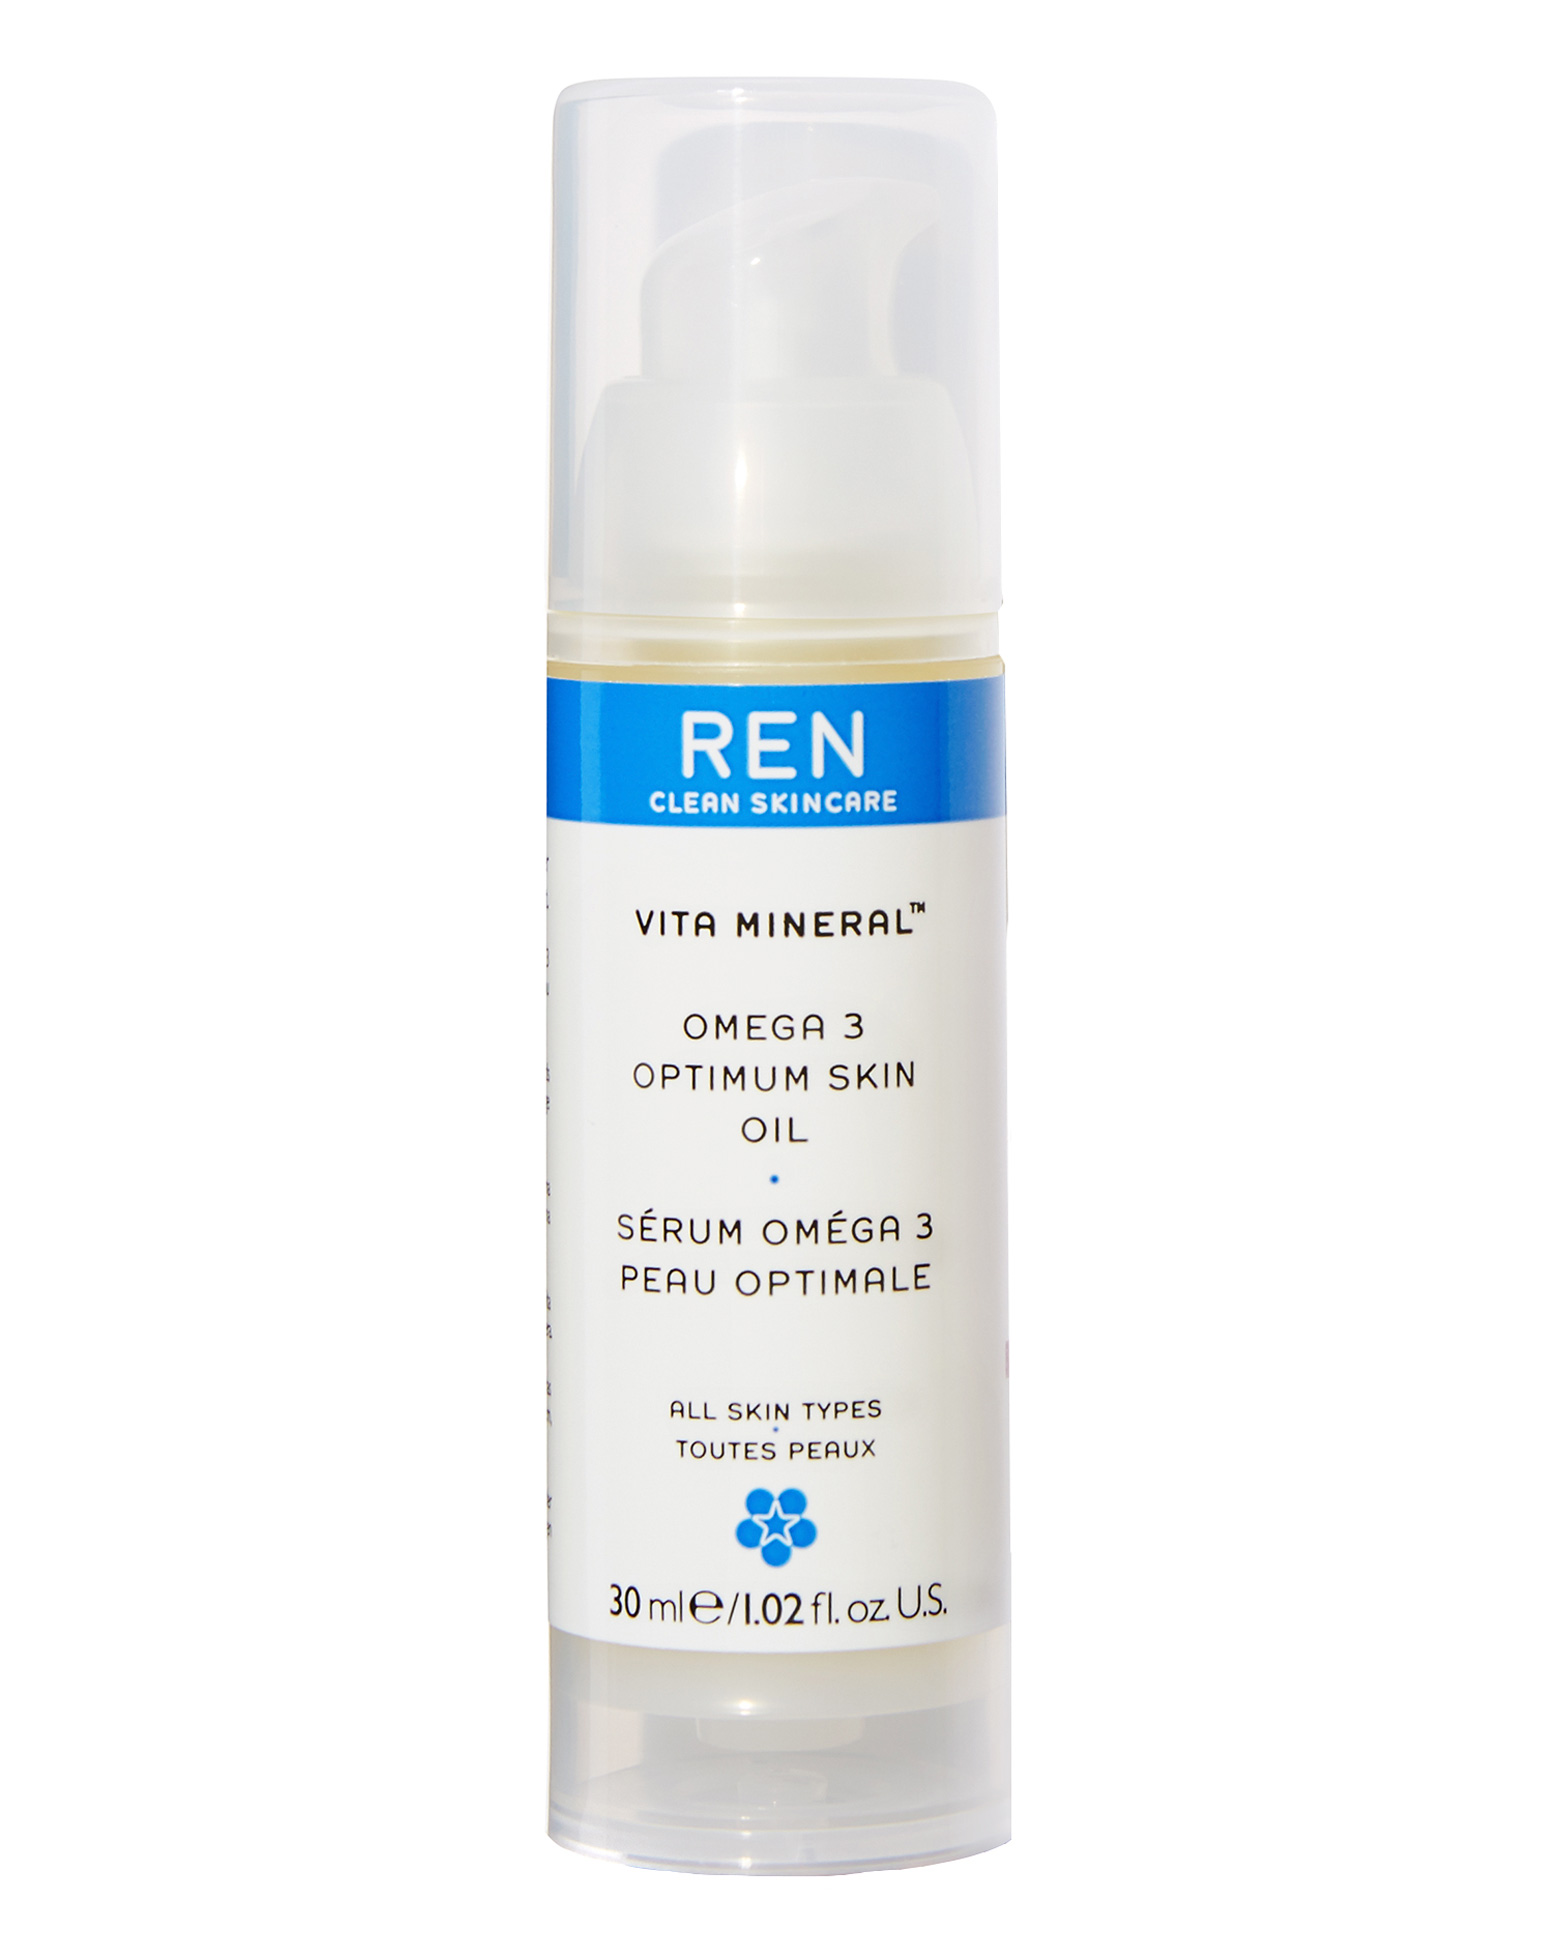 ren omega 3 optimum skin oil